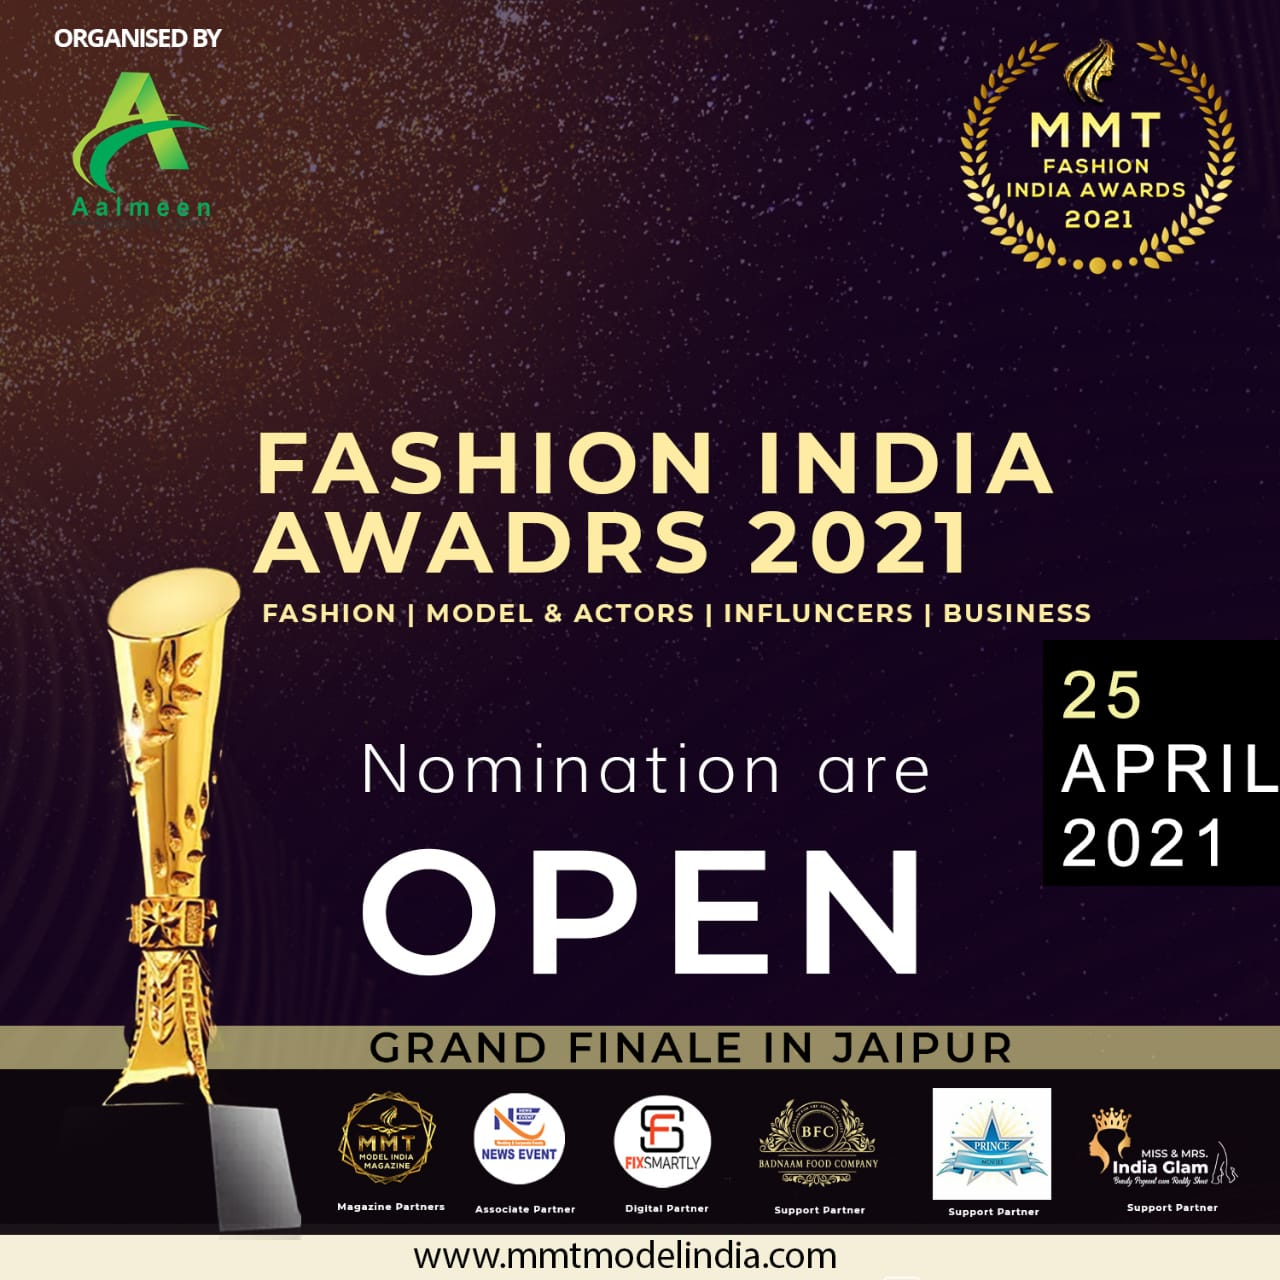 MMT-Fashion-India-Awards-will-be-held-on-07th-June